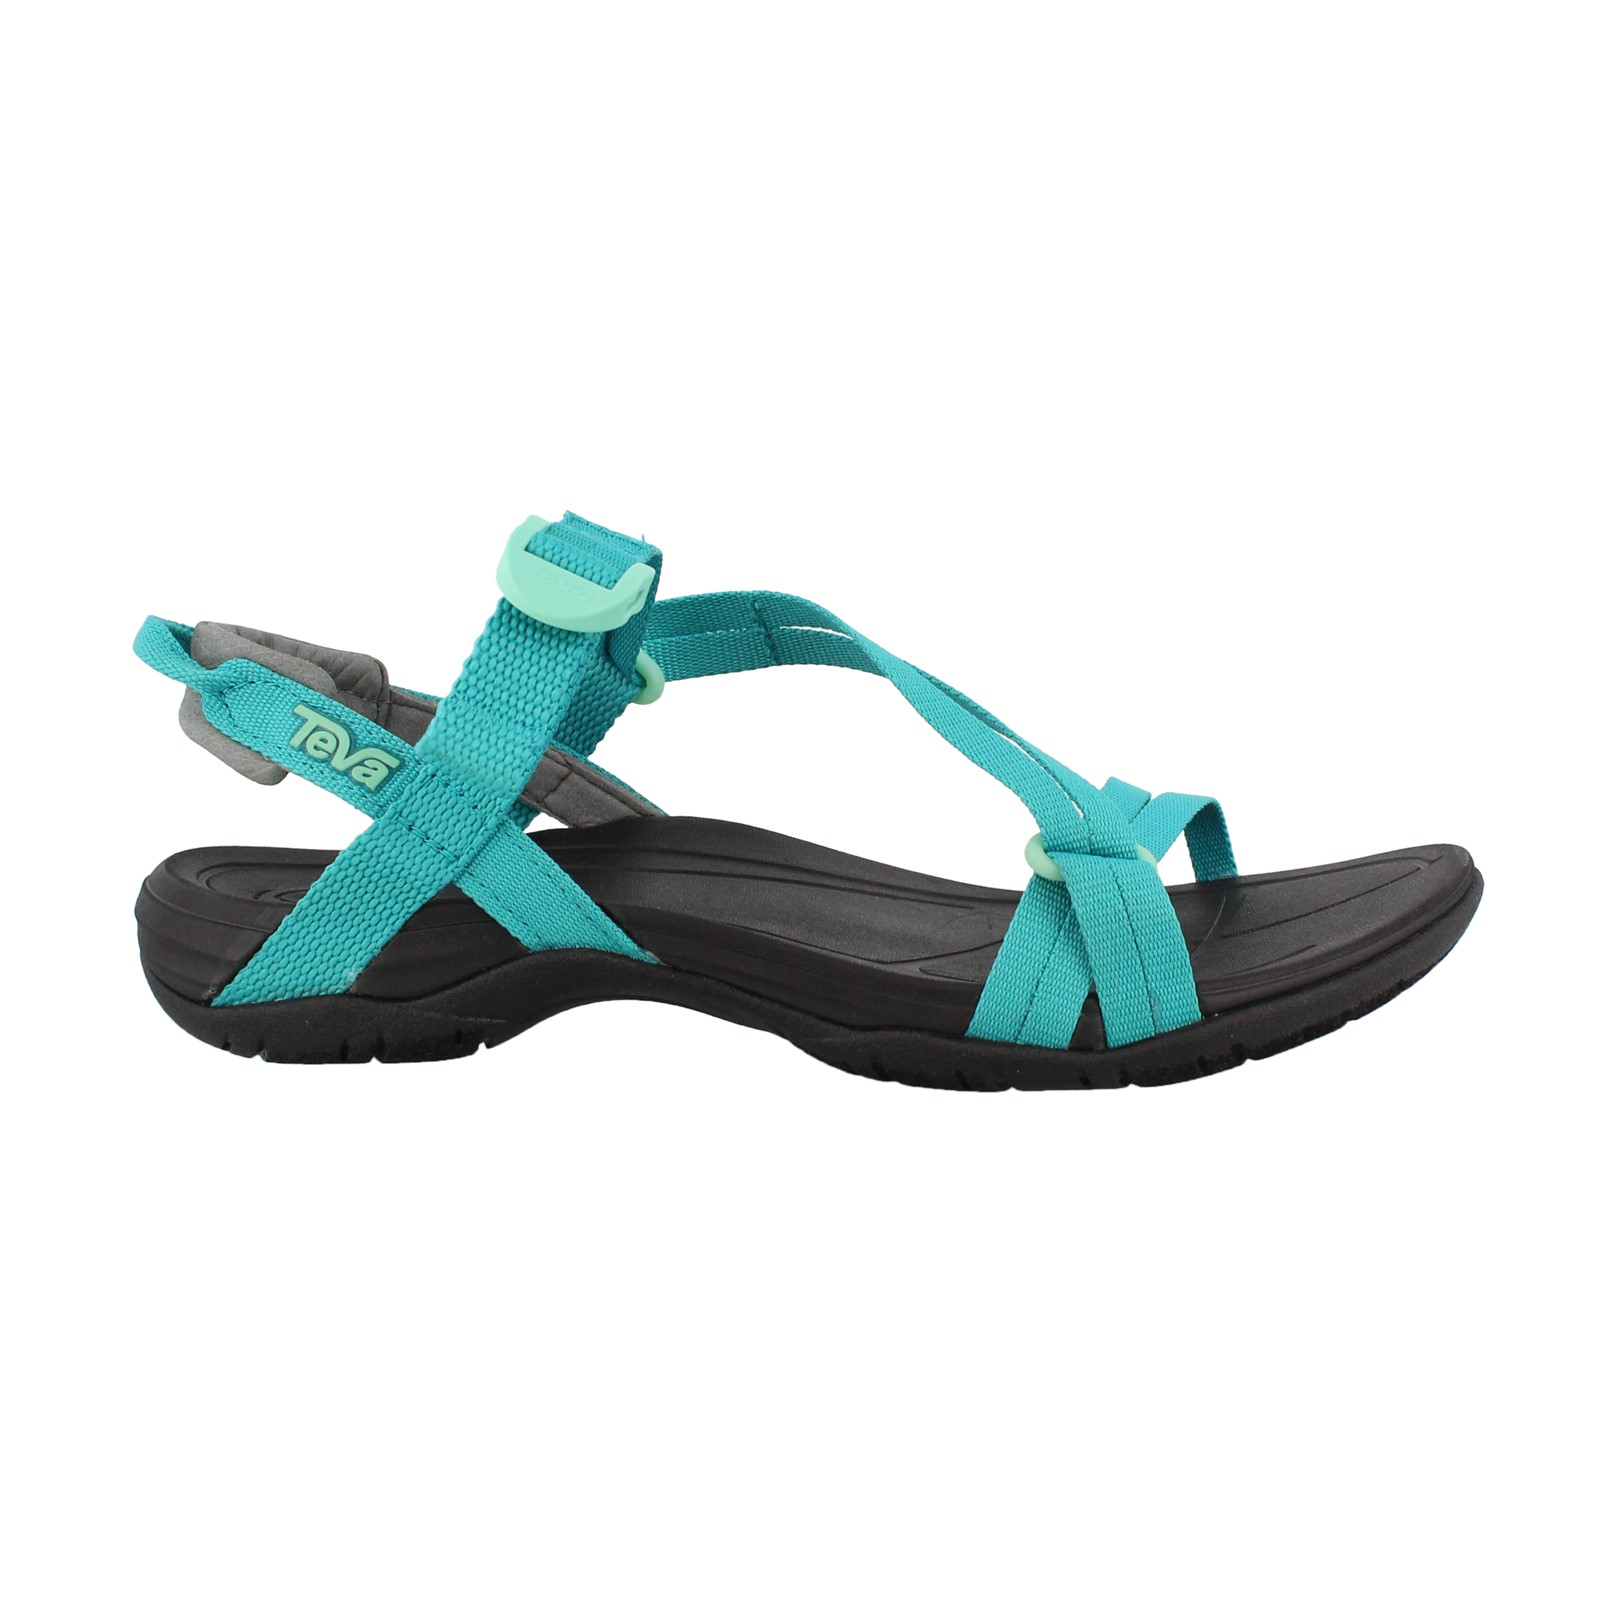 Women's Teva, Sirra Sandals